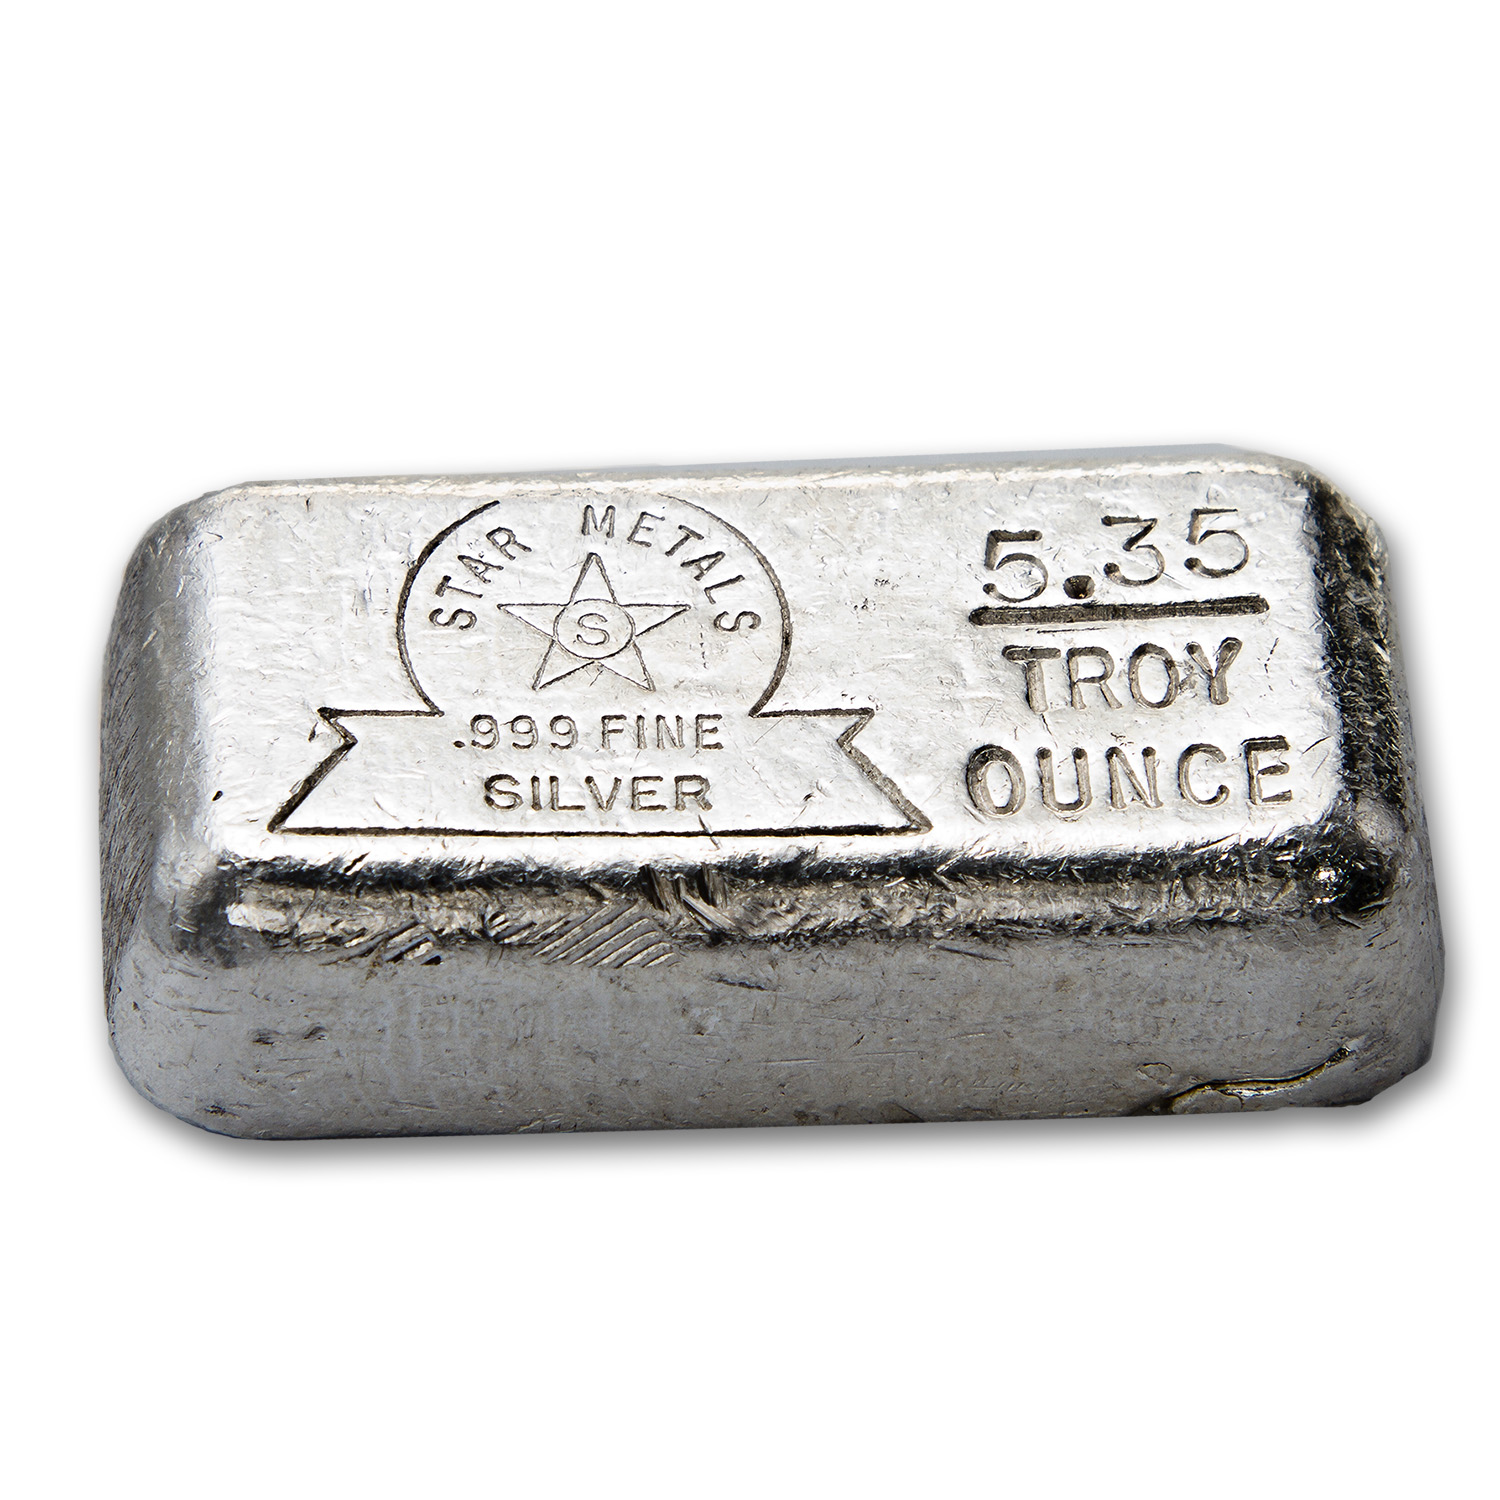 5.35 oz Silver Bar - Star Metals